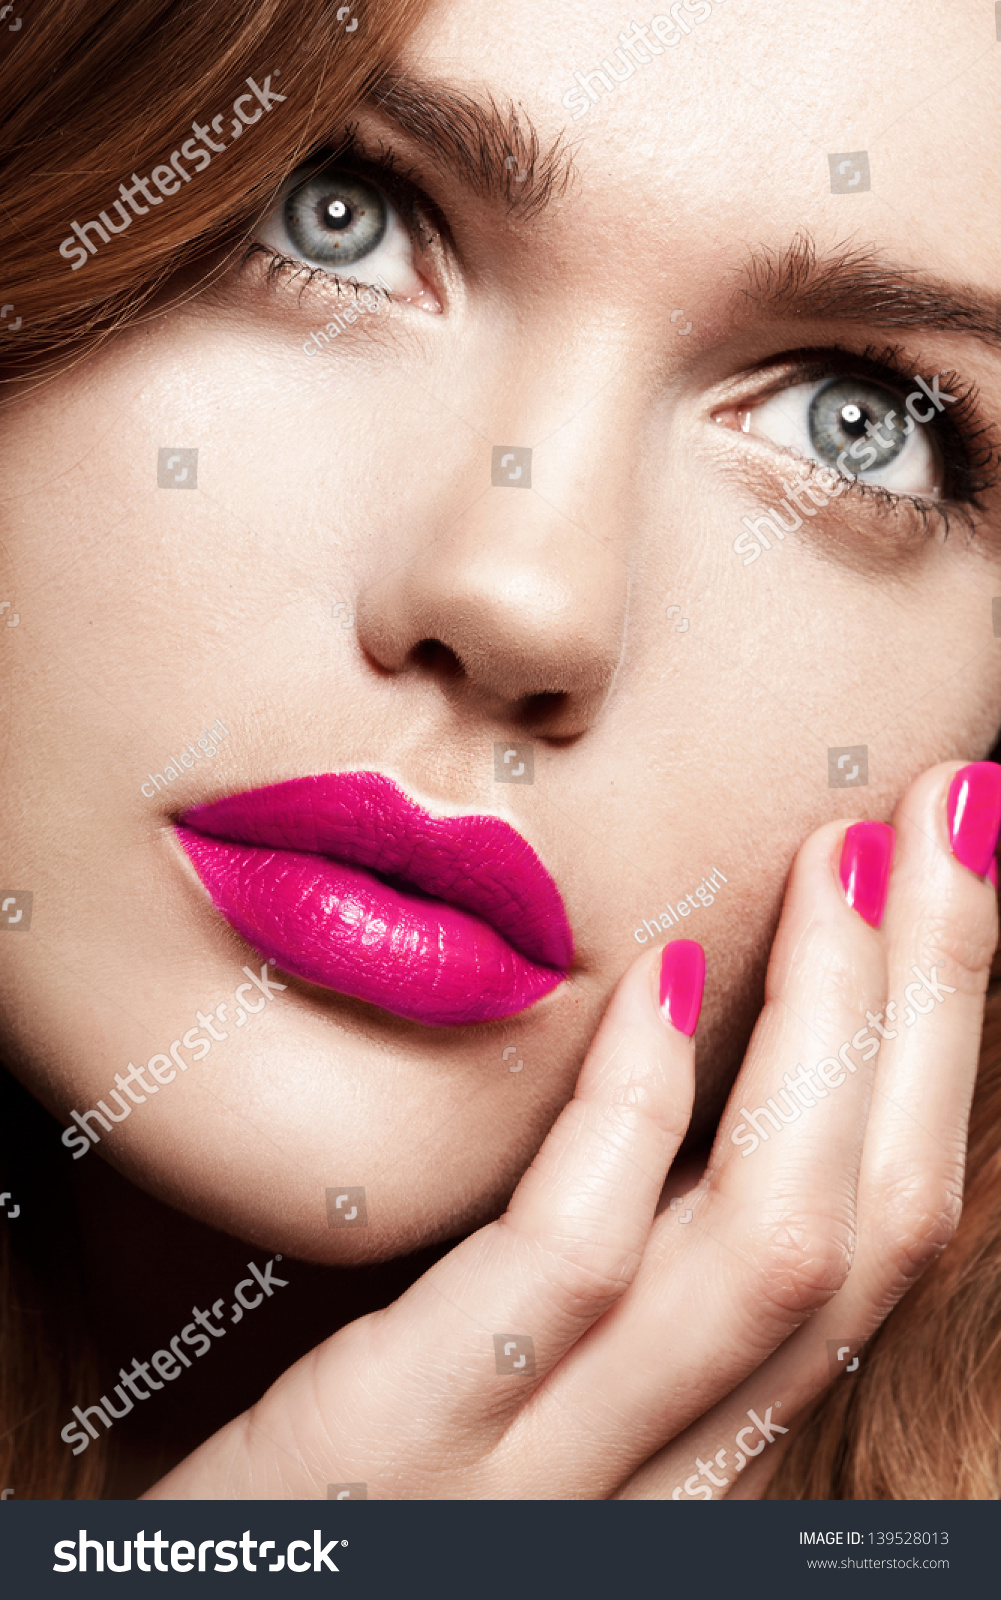 Beautiful Woman With Fashion Bright Makeup Stock Image ...